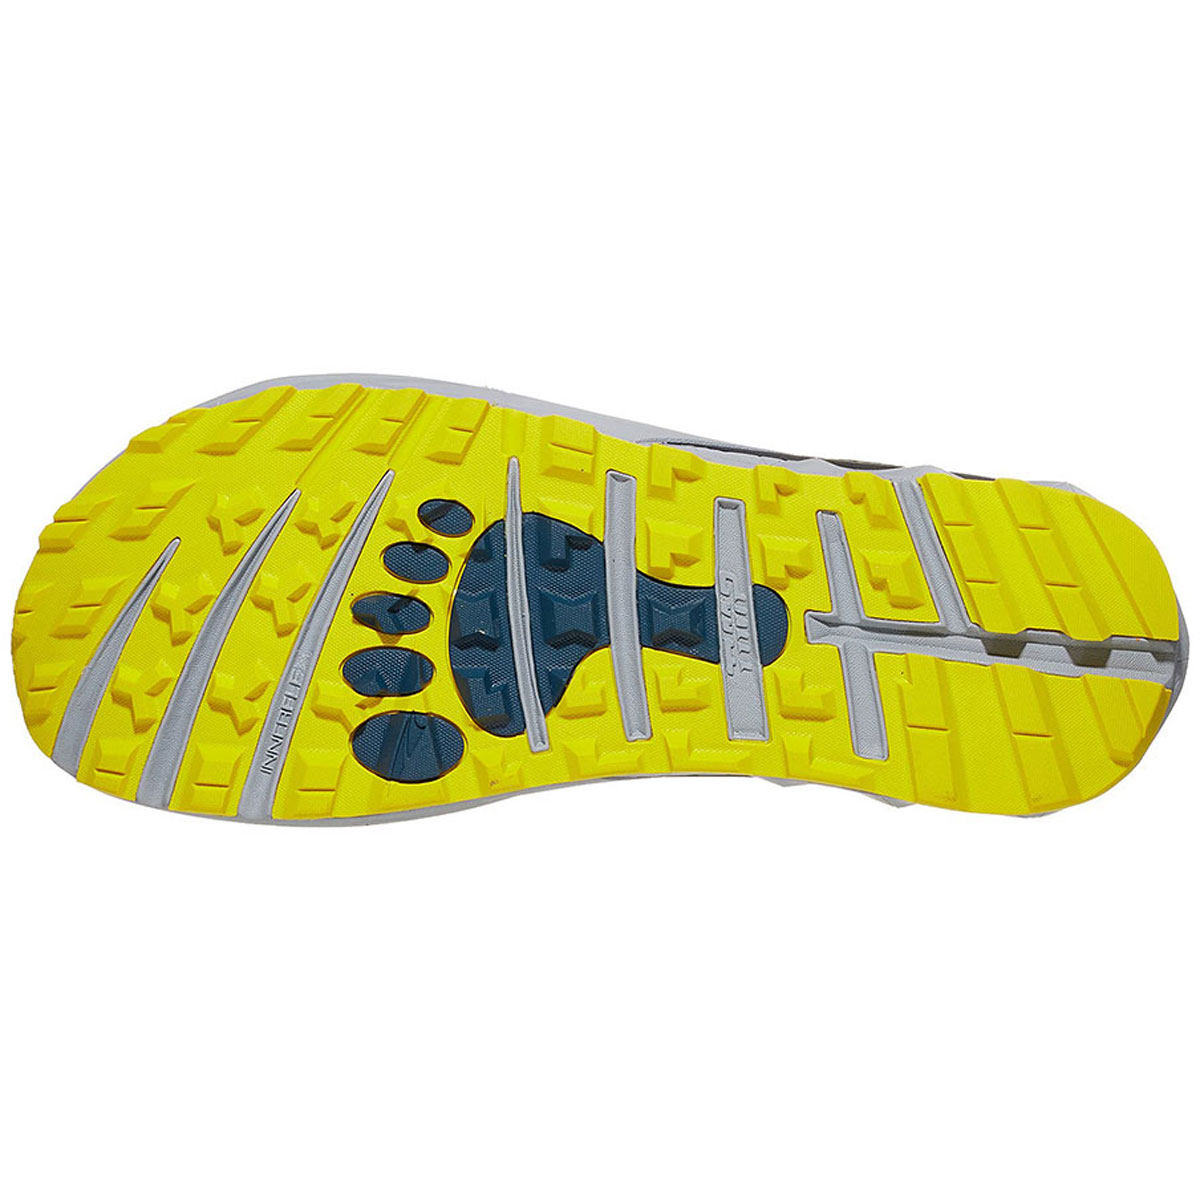 Men's Altra Timp 2 Running Shoe - Color: Moroccan Blue/Yellow (Regular Width) - Size: 10.5, Moroccan Blue/Yellow, large, image 3